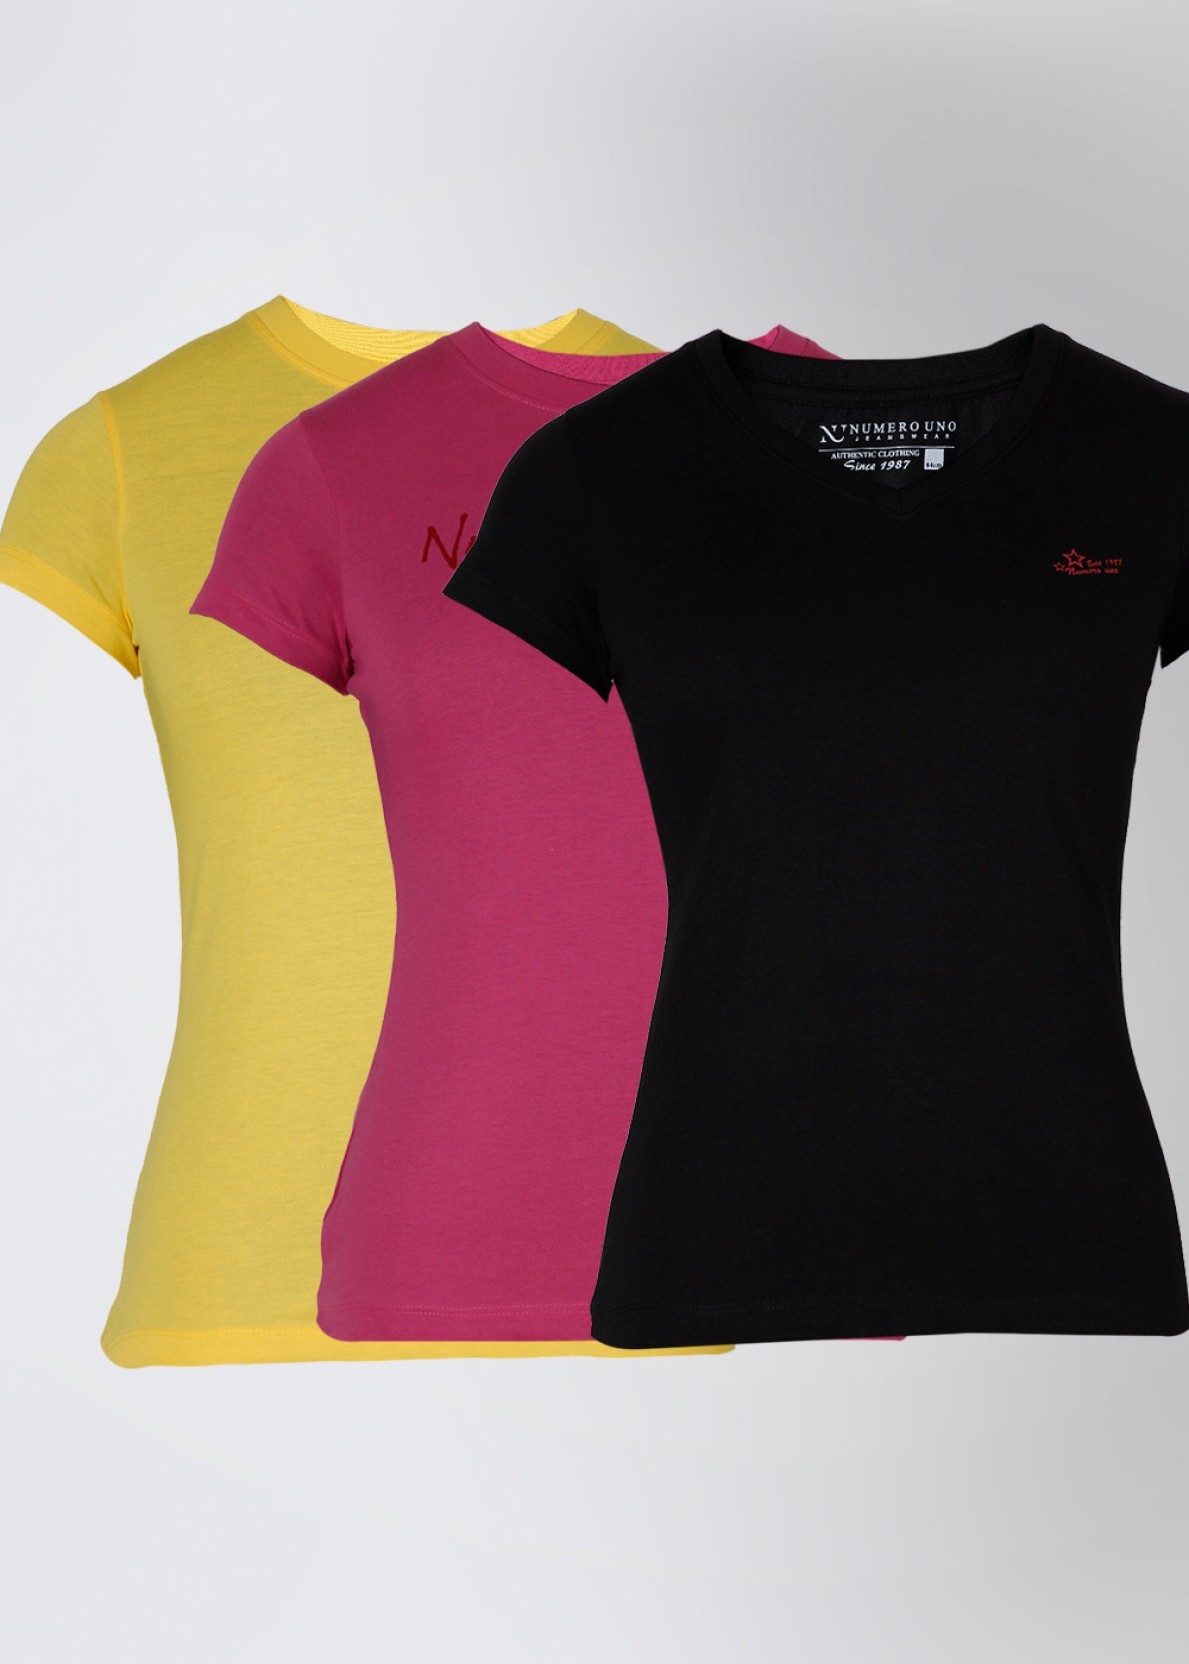 137b4657 Numero Uno Solid Women's Round Neck Black, Yellow, Pink T-Shirt (Pack of 3)